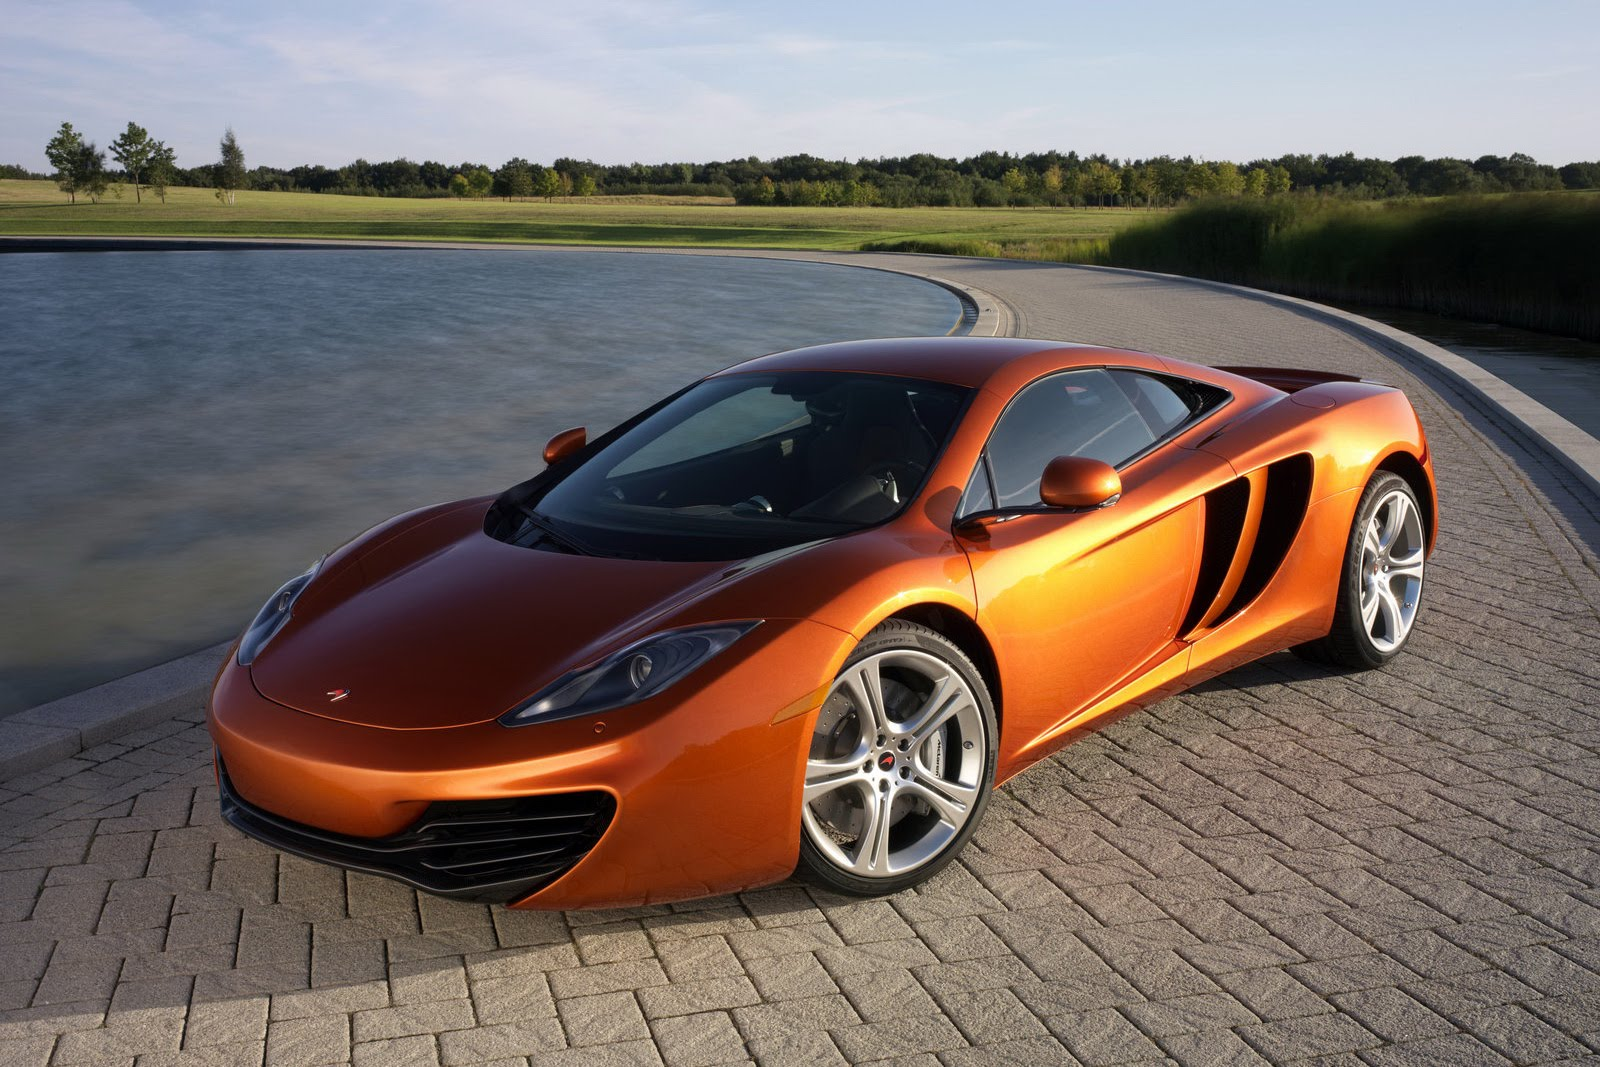 Photo:  d8b176db8e9922a676c22a09f37e0f1e_mclaren-mp4-12c-prices-and-mclaren-car-price-2012_1600-1067